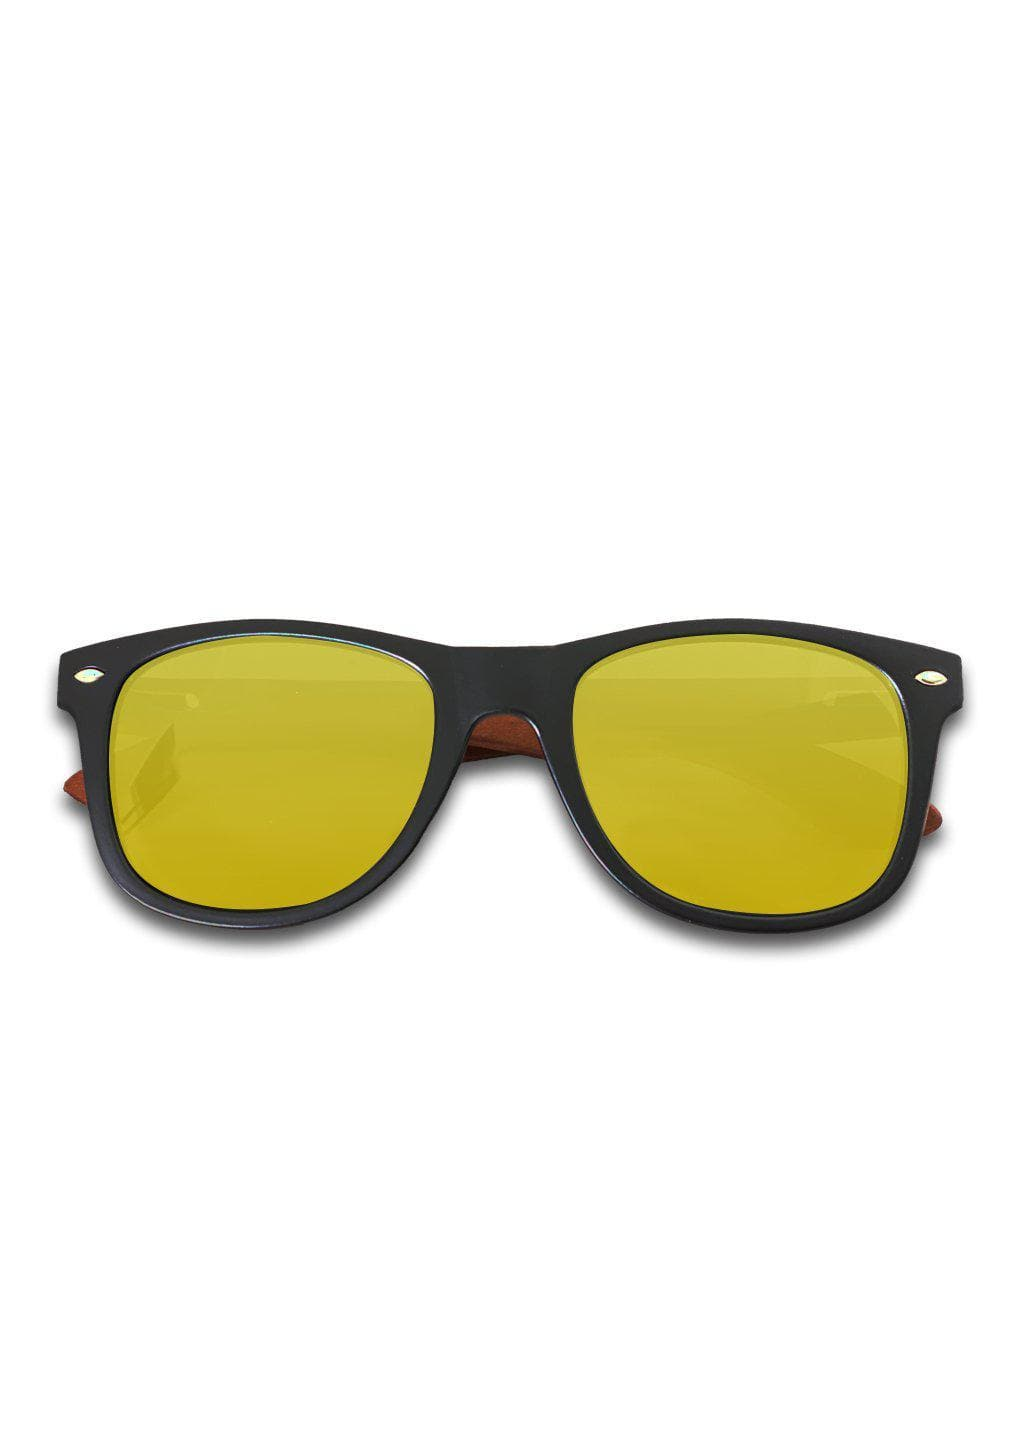 Eyewood Wayfarer - Amber - Our classic wooden sunglasses with golden or yellow mirror lenses.